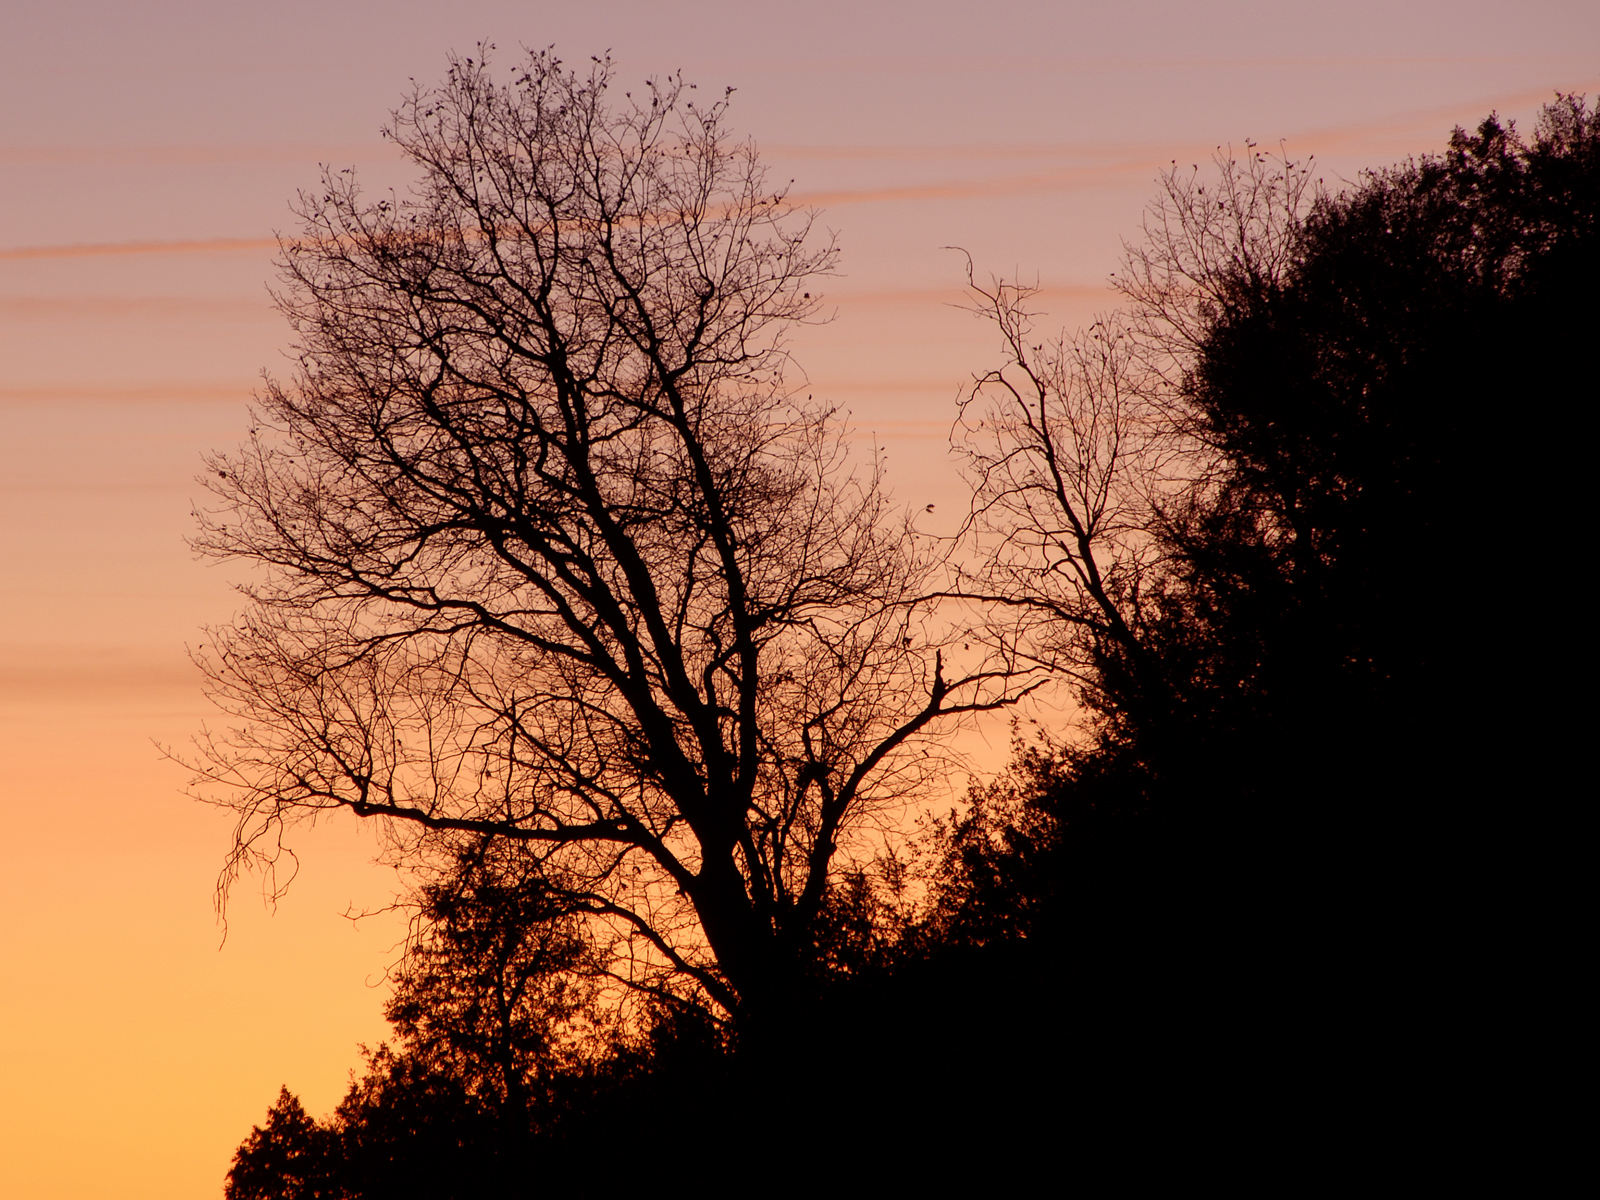 Tree at dusk in sequoia national park (i photo